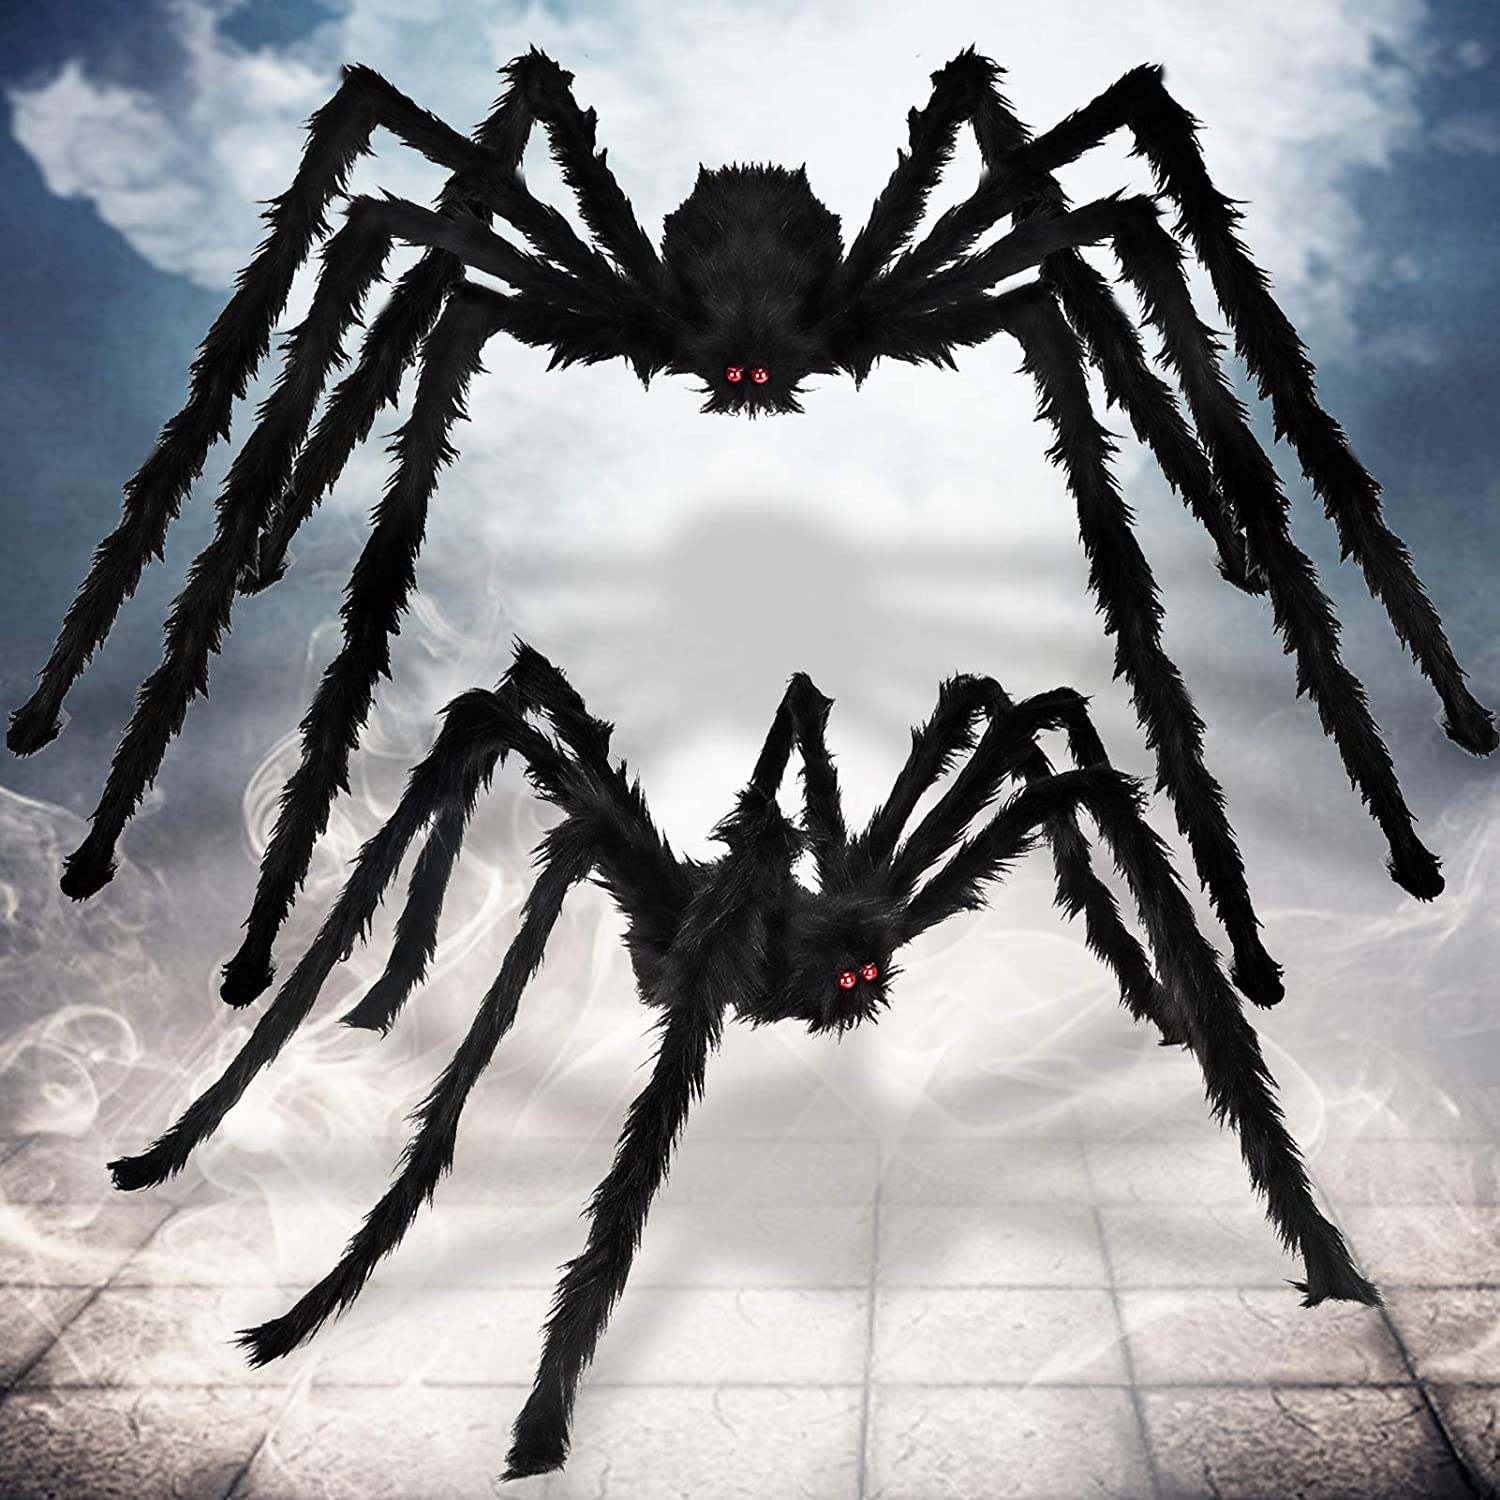 Apfity 2 Pack Halloween Decorations Spiders, Hairy Giant Spiders for Scary Halloween Decor Outdoor Wall Yard House, (6.5 FT + 5 FT)